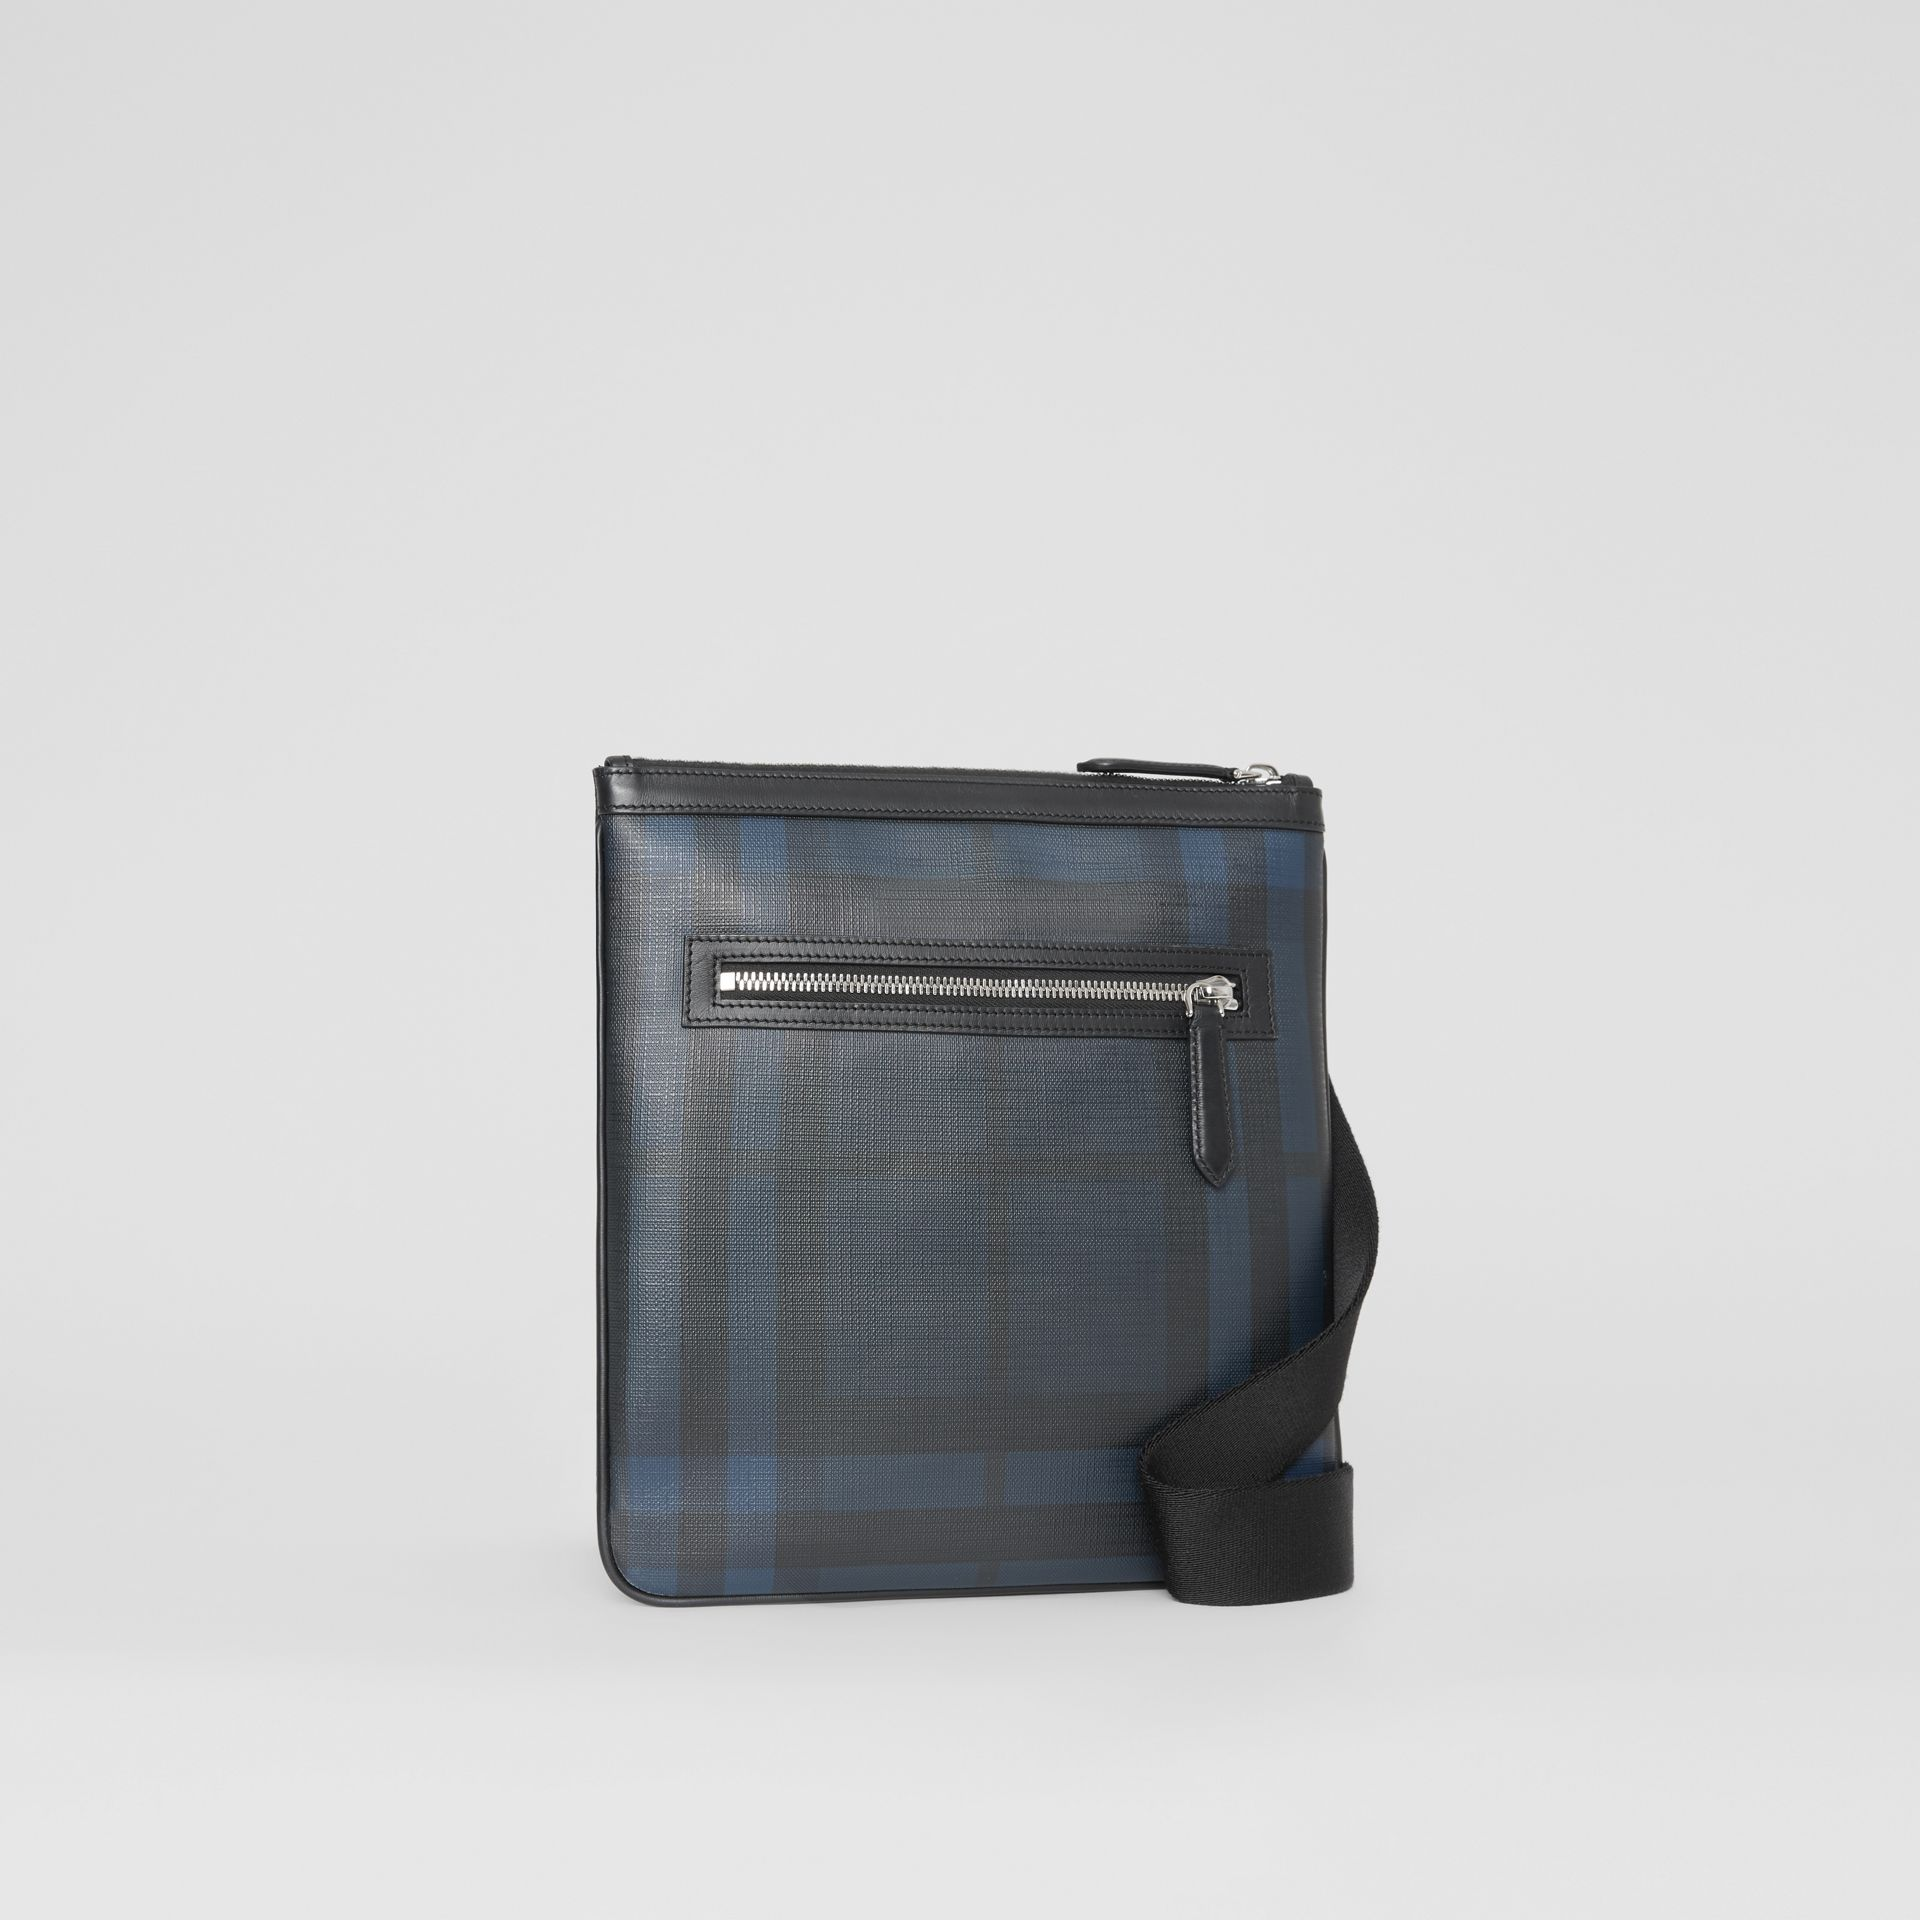 755ca2721a24 Vintage BURBERRY London Blue Label Shoulder Handbag Purse Satchel Blue  Checks Source · Leather Trim London Check Crossbody Bag in Navy black Men